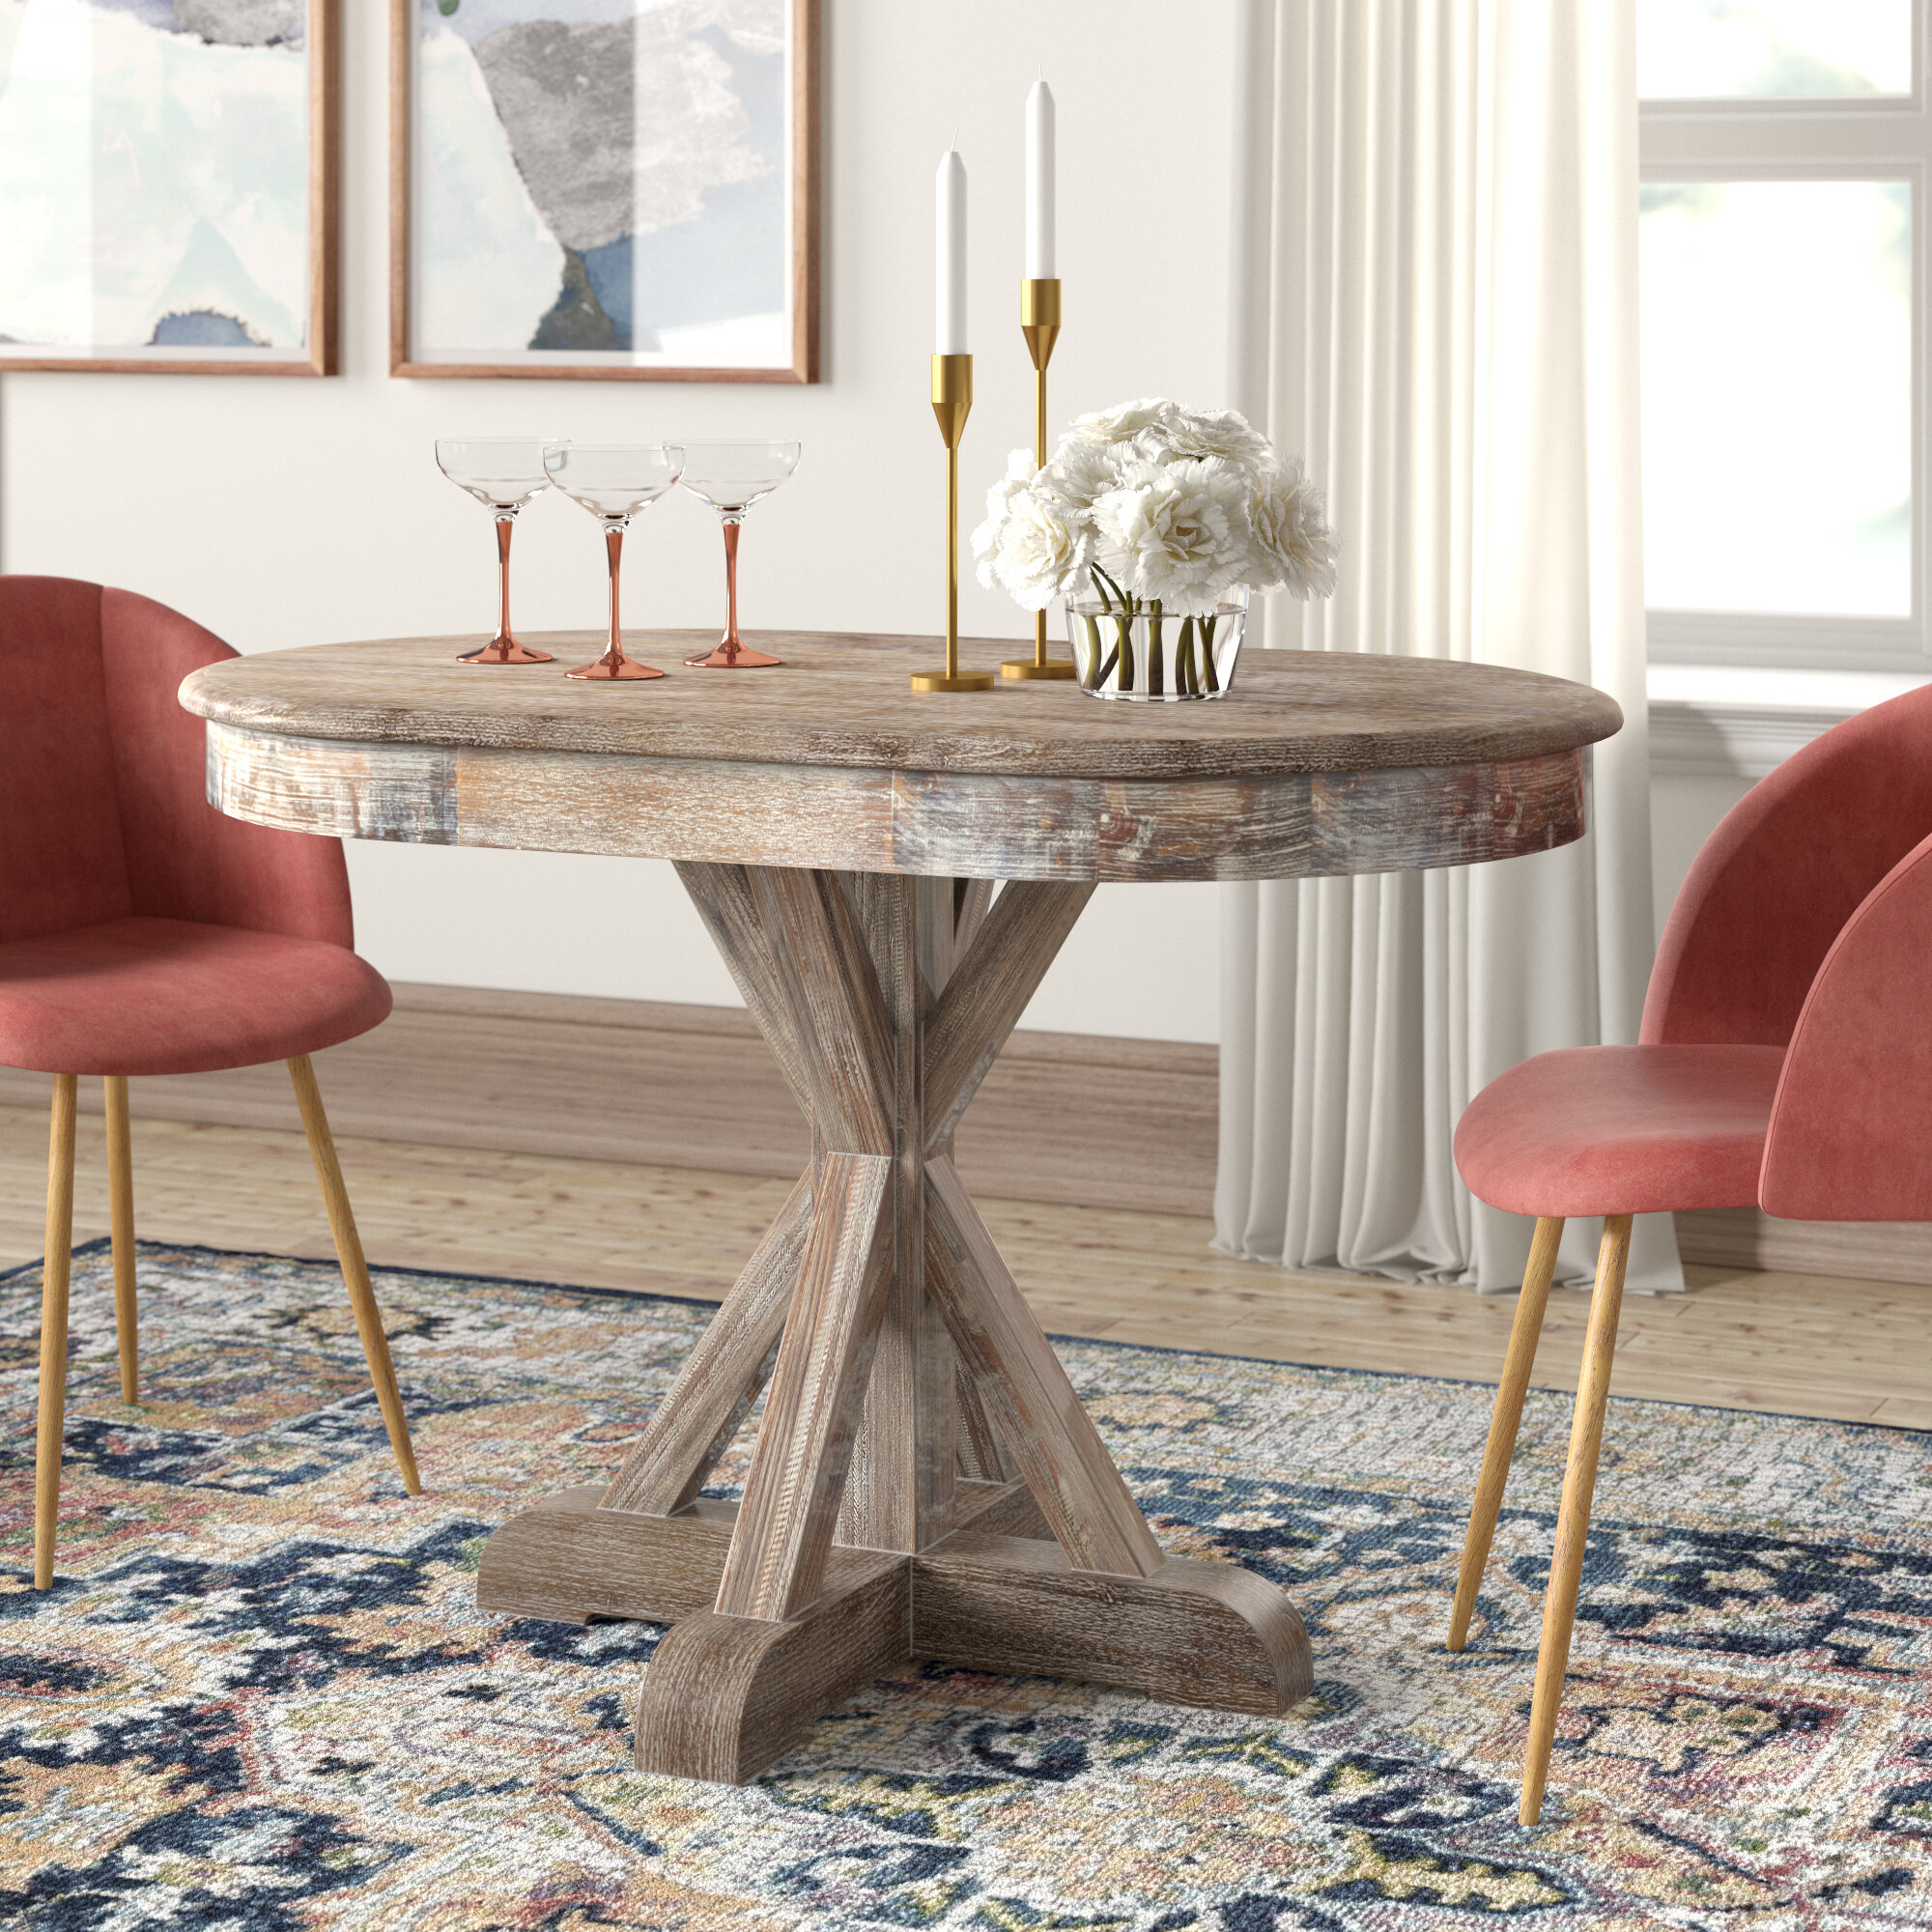 Joss & Main Intended For Linette 5 Piece Dining Table Sets (#5 of 20)